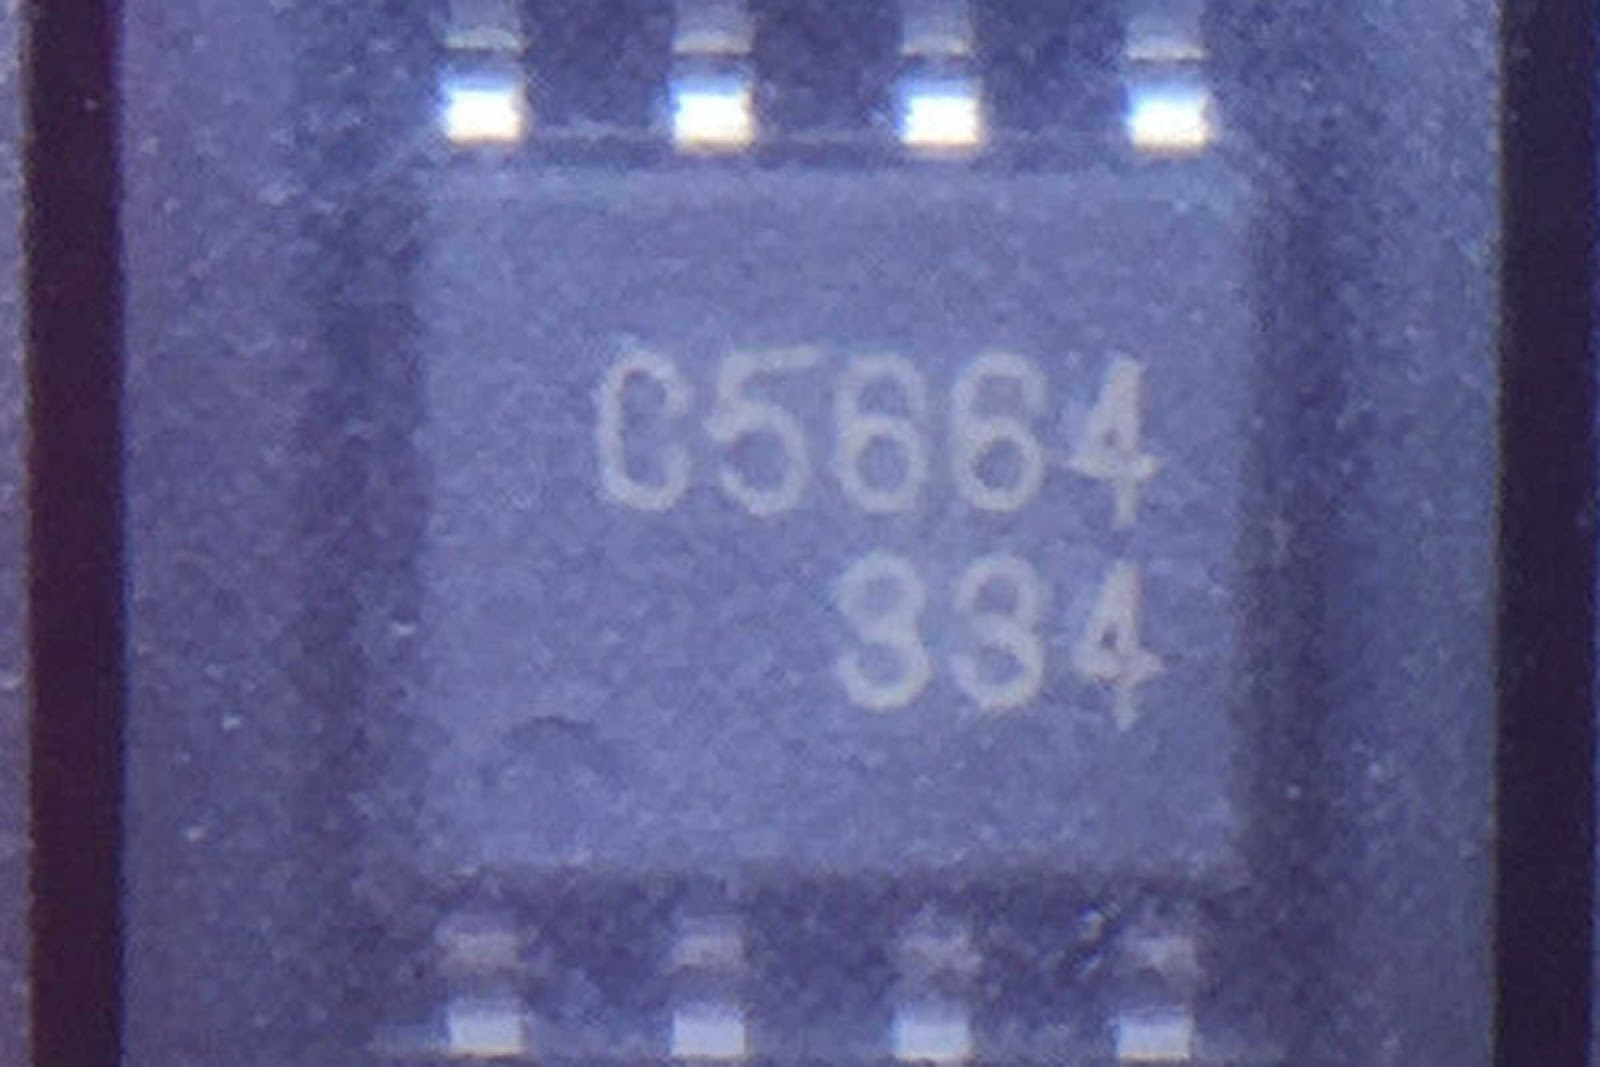 C5664 2SC5664 Fuel injection driver chip For Toyota